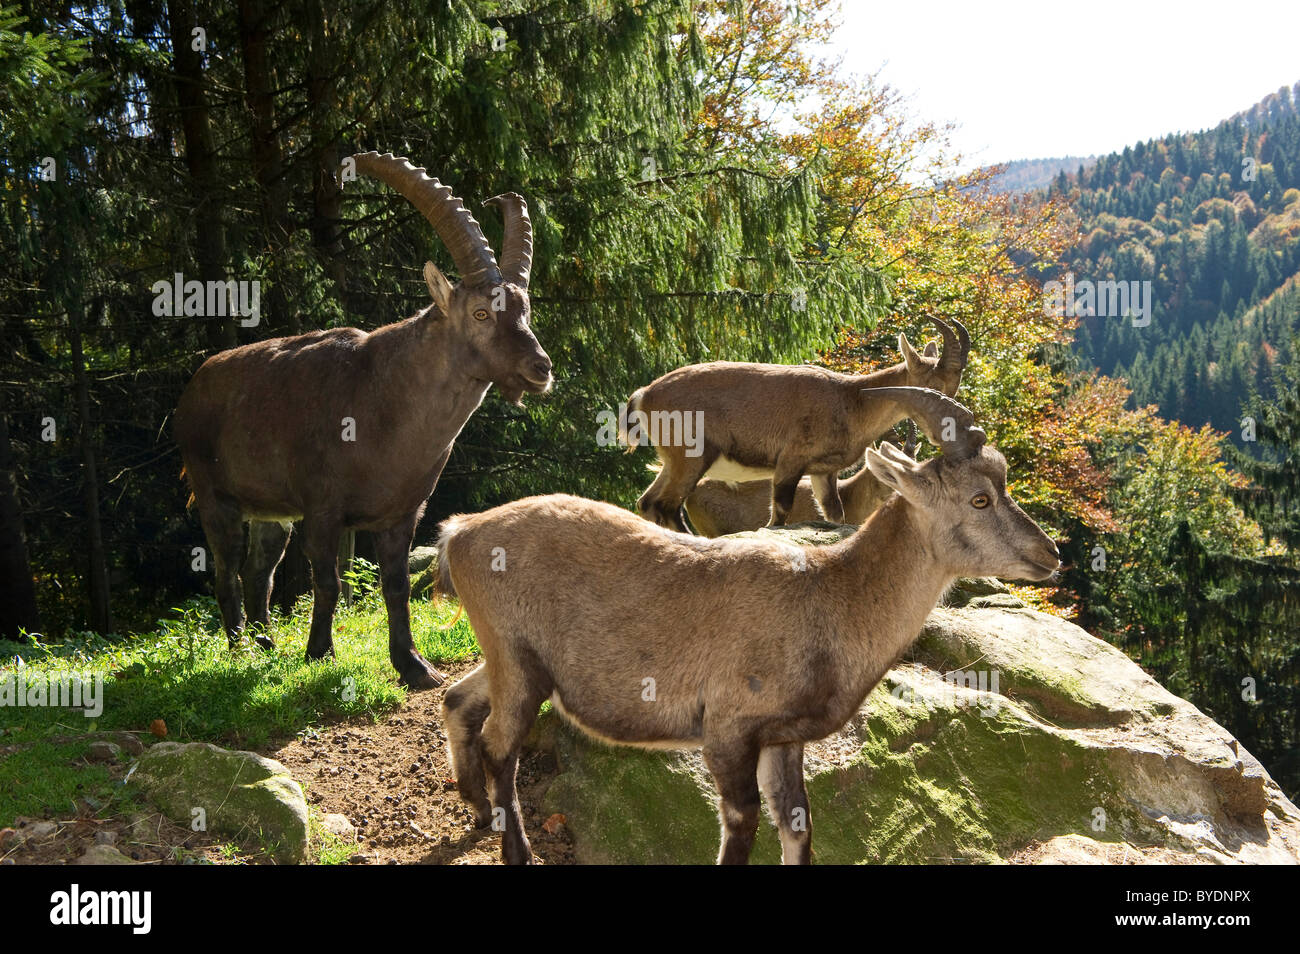 Ibex, Steinwasenpark, South Black Forest, Baden-Wuerttemberg, Germany, Europe - Stock Image